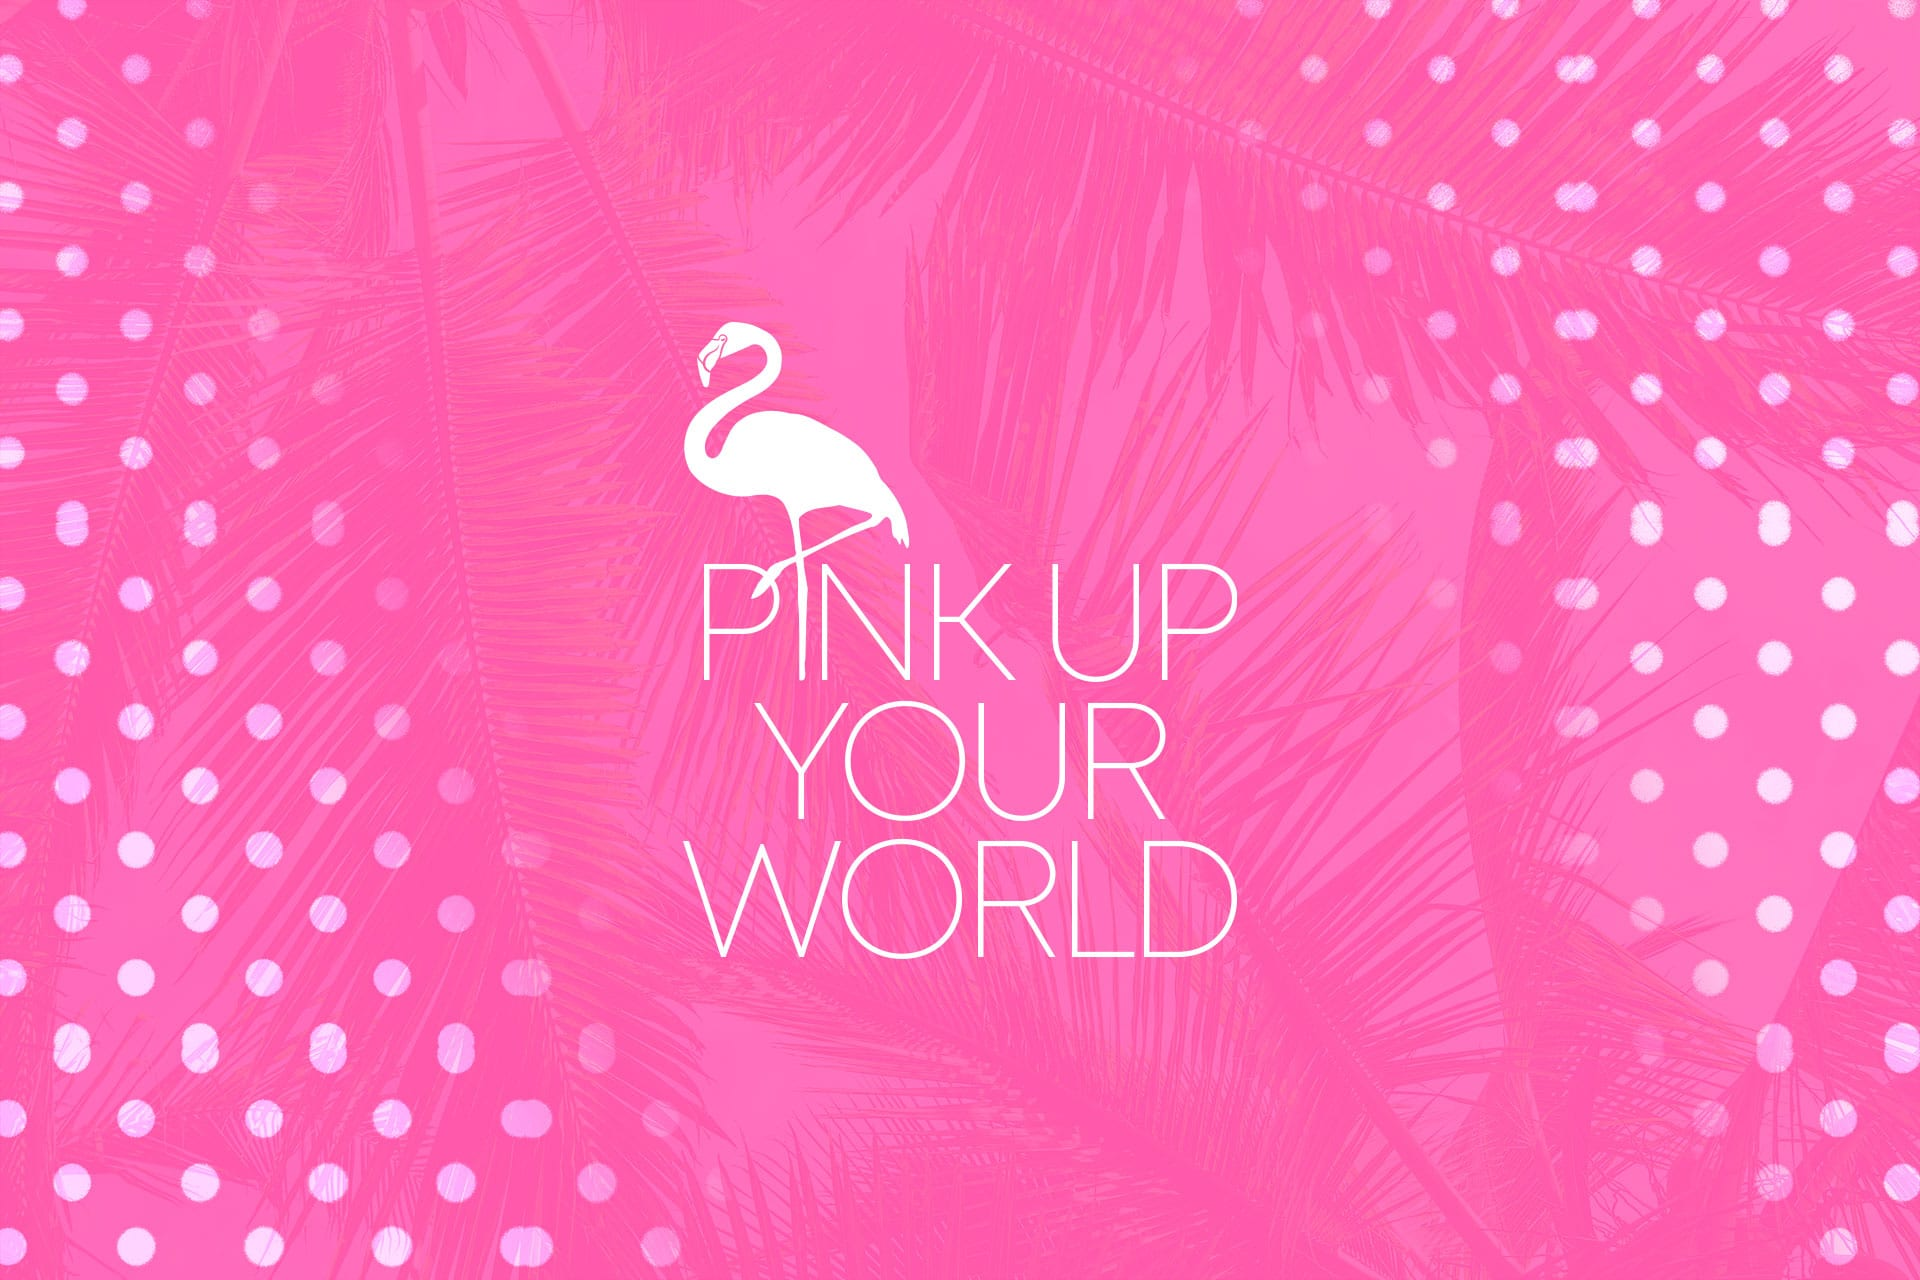 Pink Up your World Branding